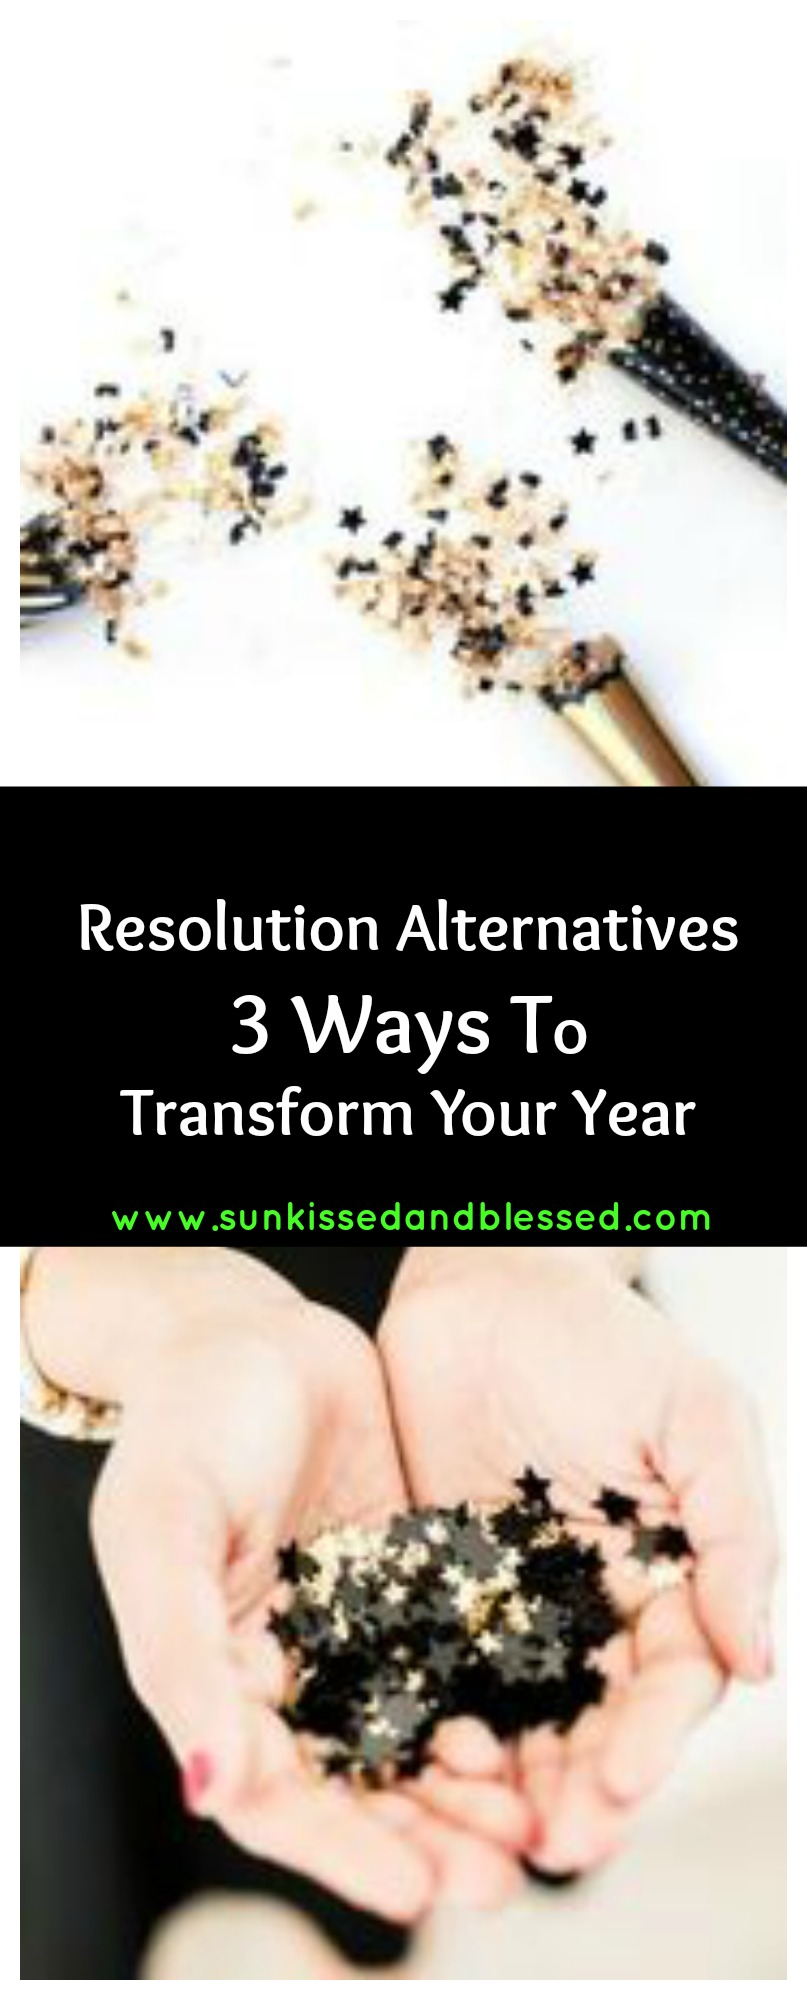 Blessed with New Year's Resolution Alternatives